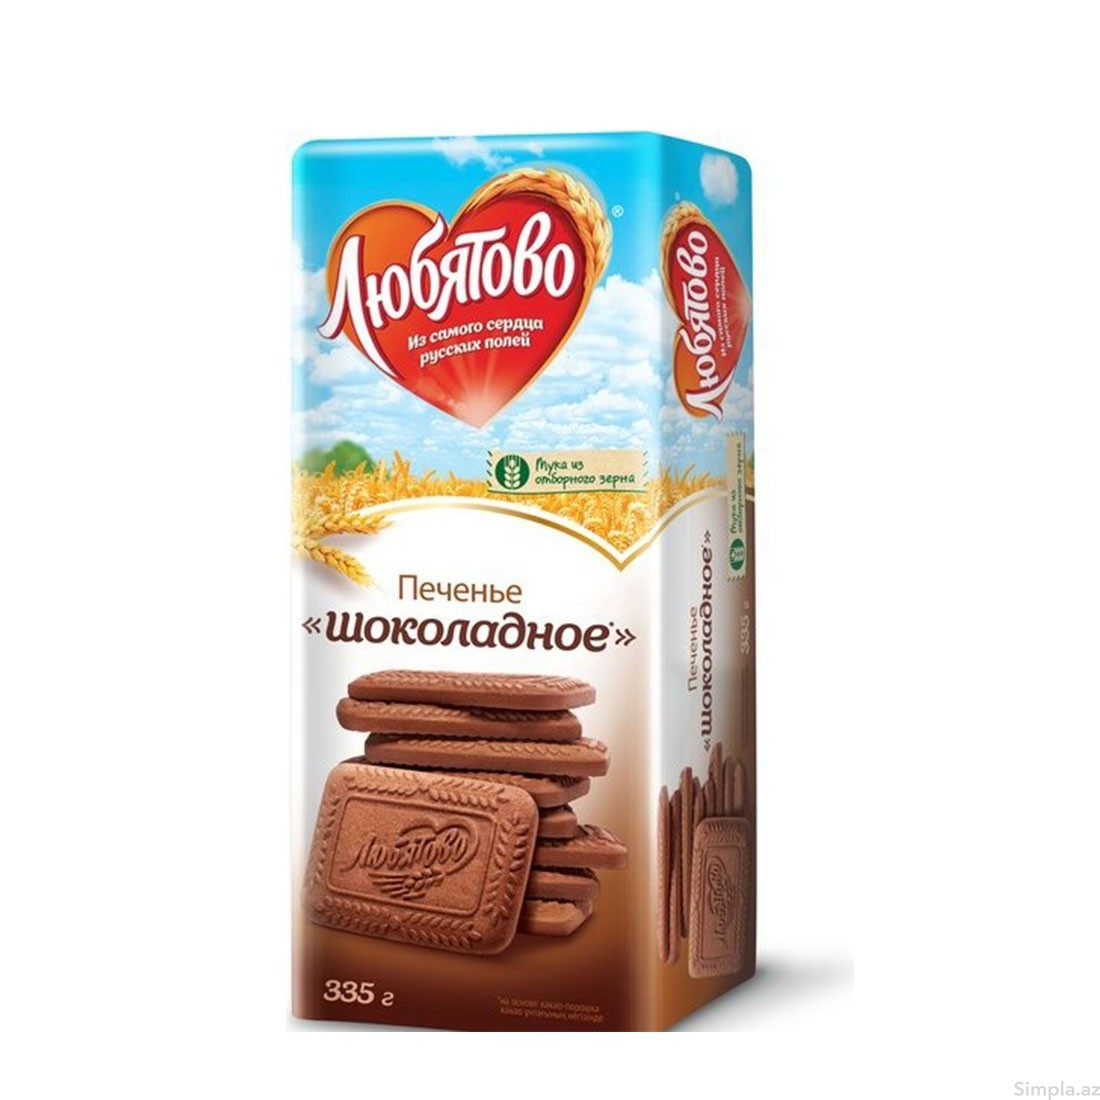 Lyubyatovo - high quality biscuits